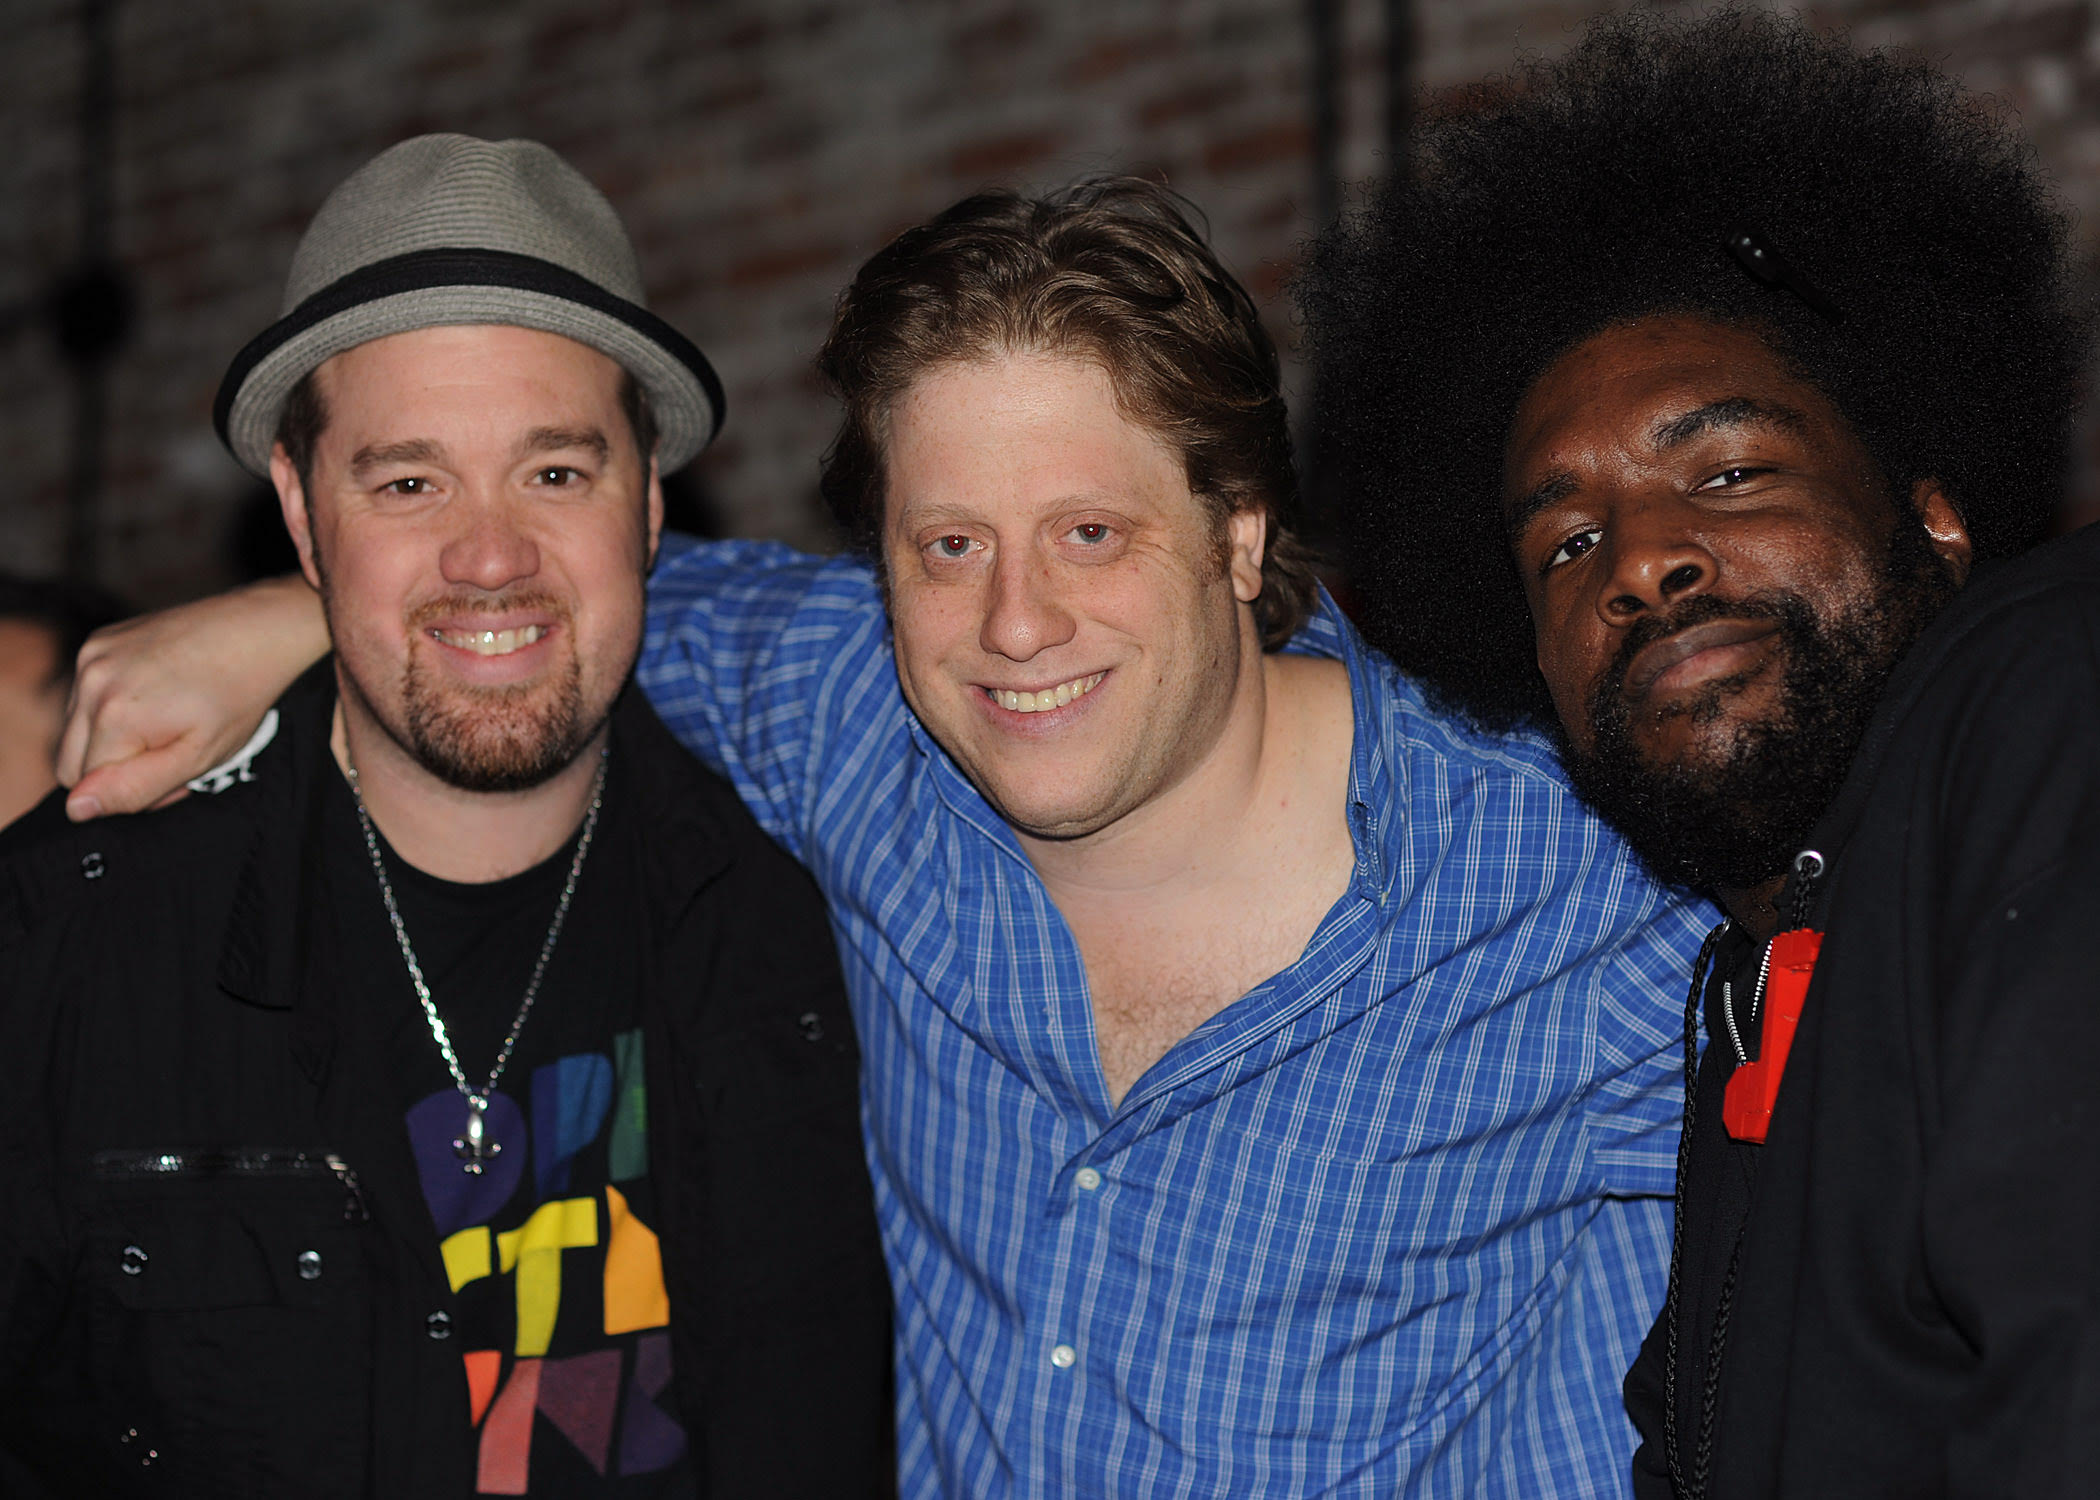 (L-R) Eric Krasno, Peter Shaprio, Questlove (Ahmir Thompson)